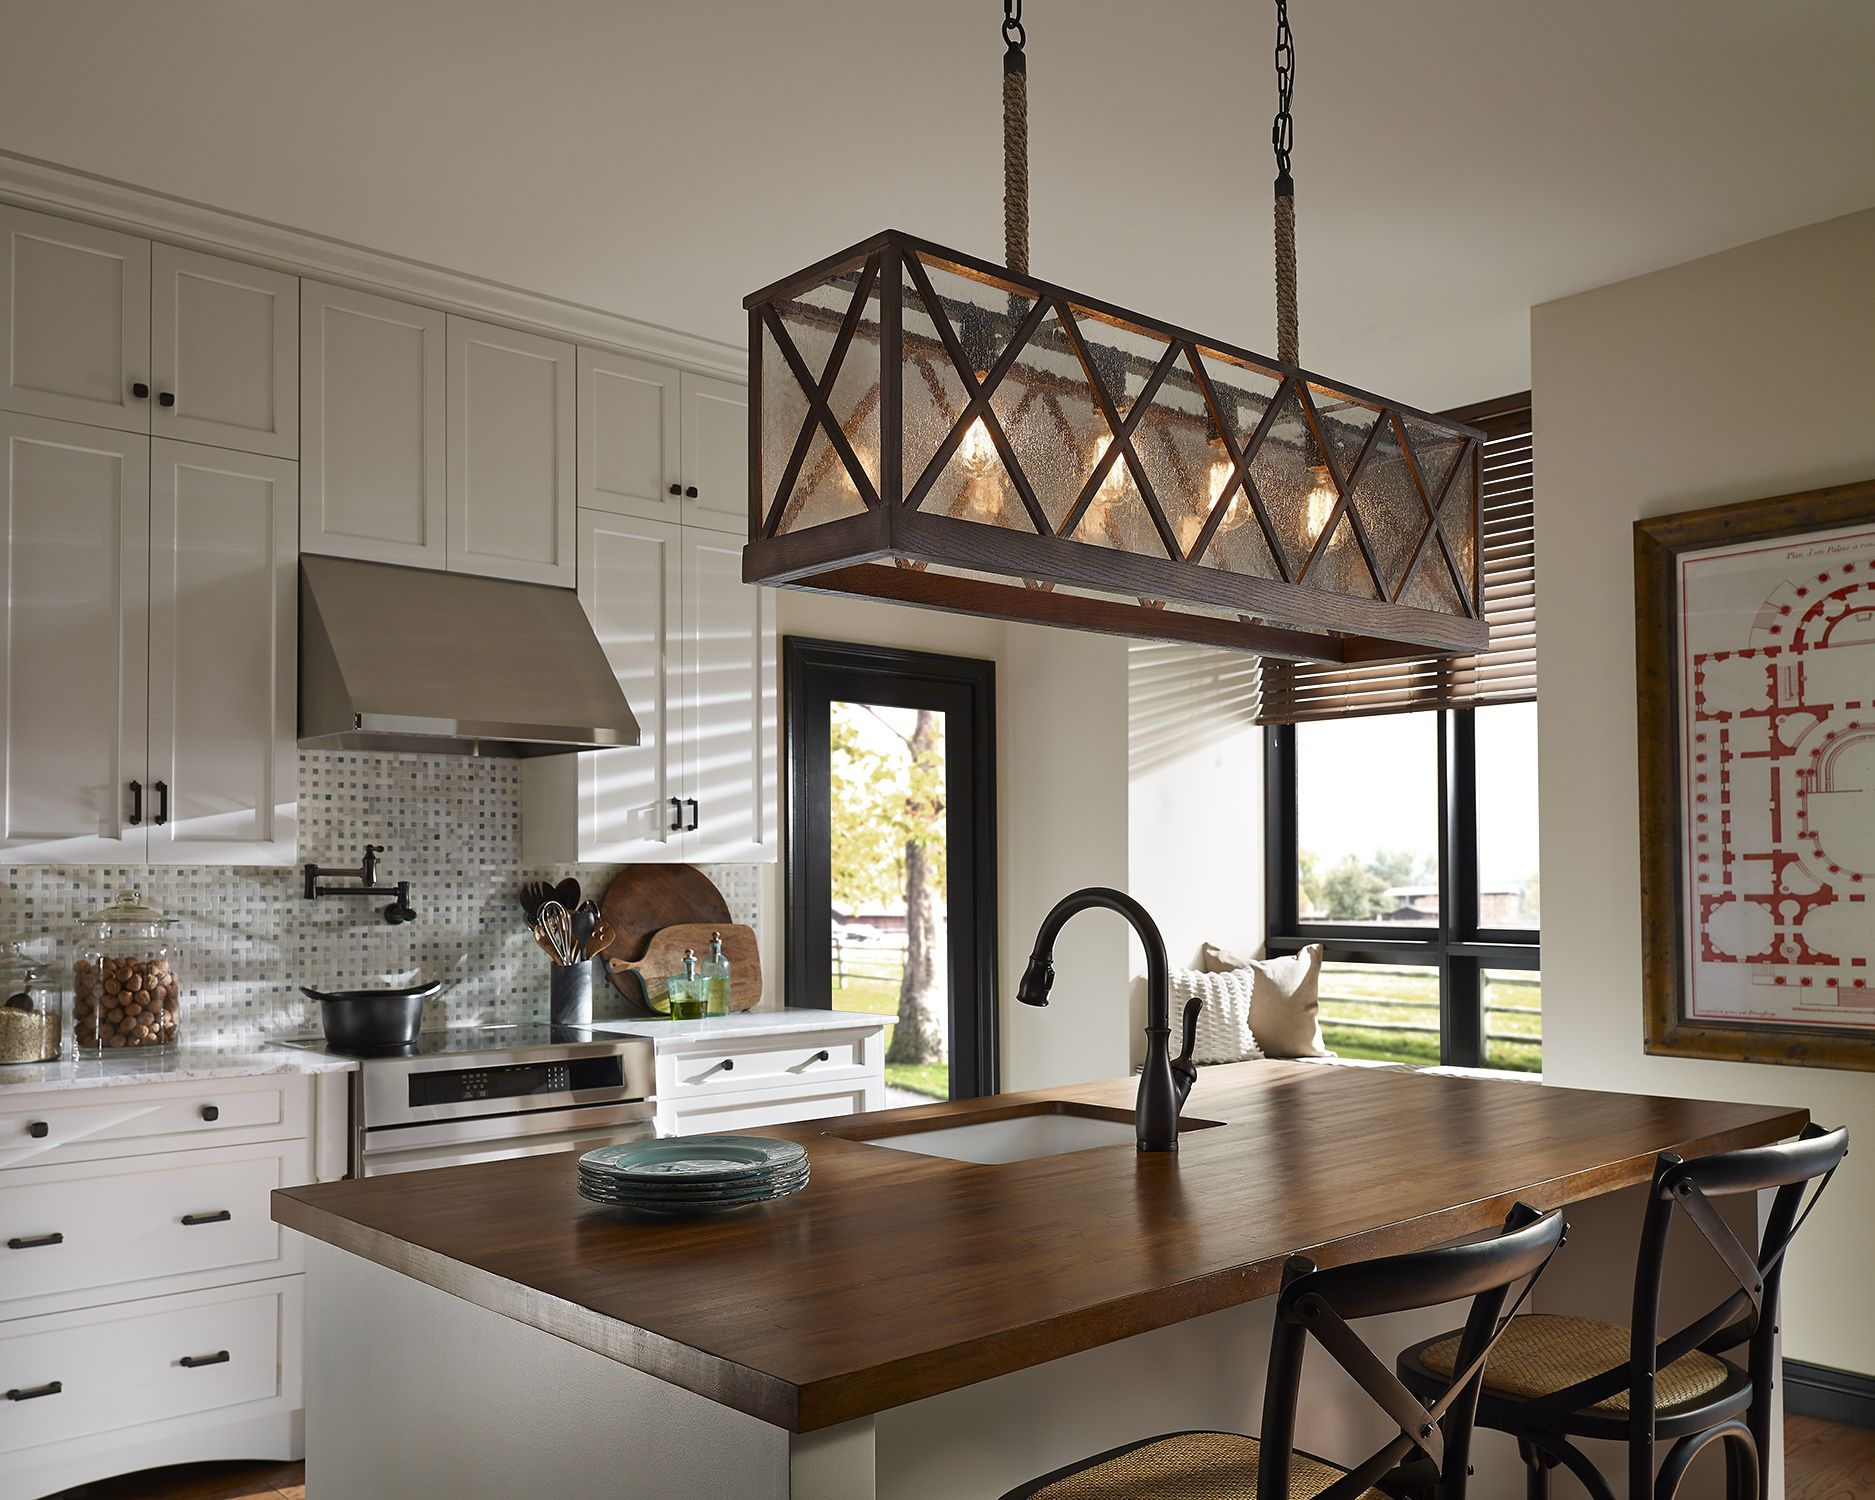 design for the kitchen and island appealing zdif ideas best light lighting picture lights style pic pendant